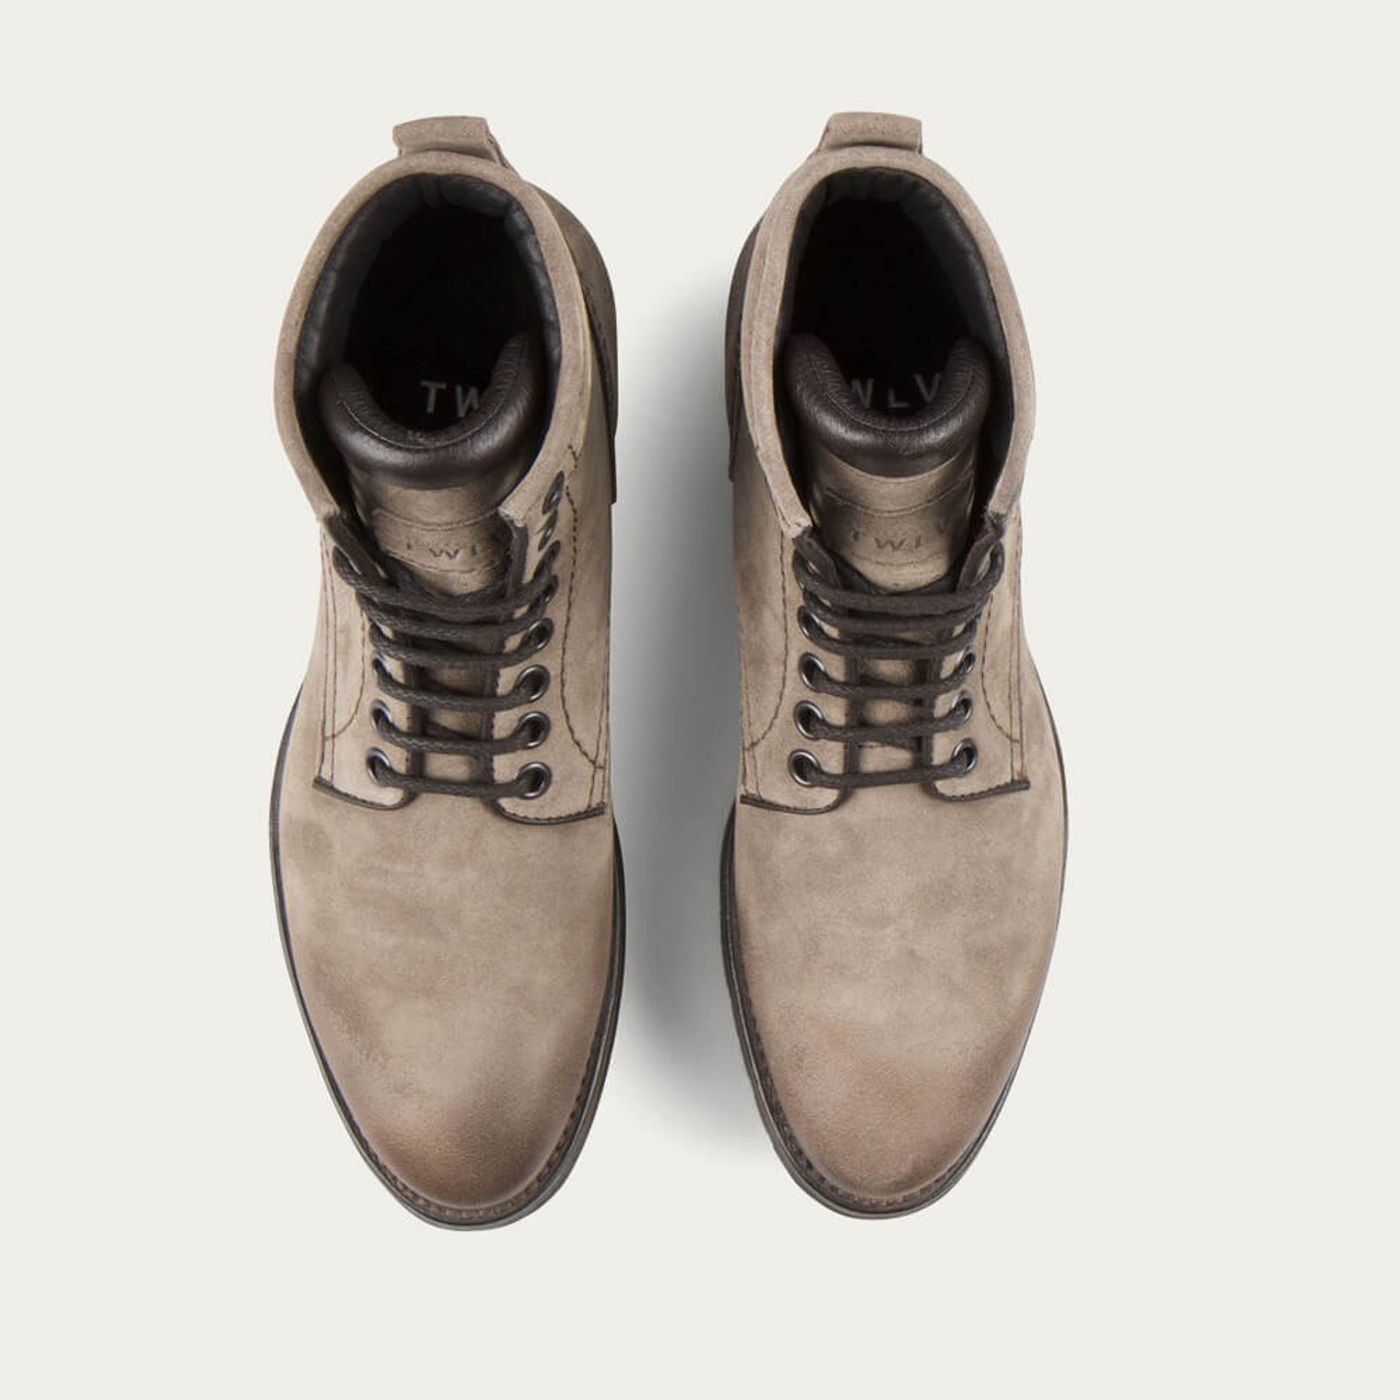 Sand Royal Suede Leather Logger Boots   Bombinate